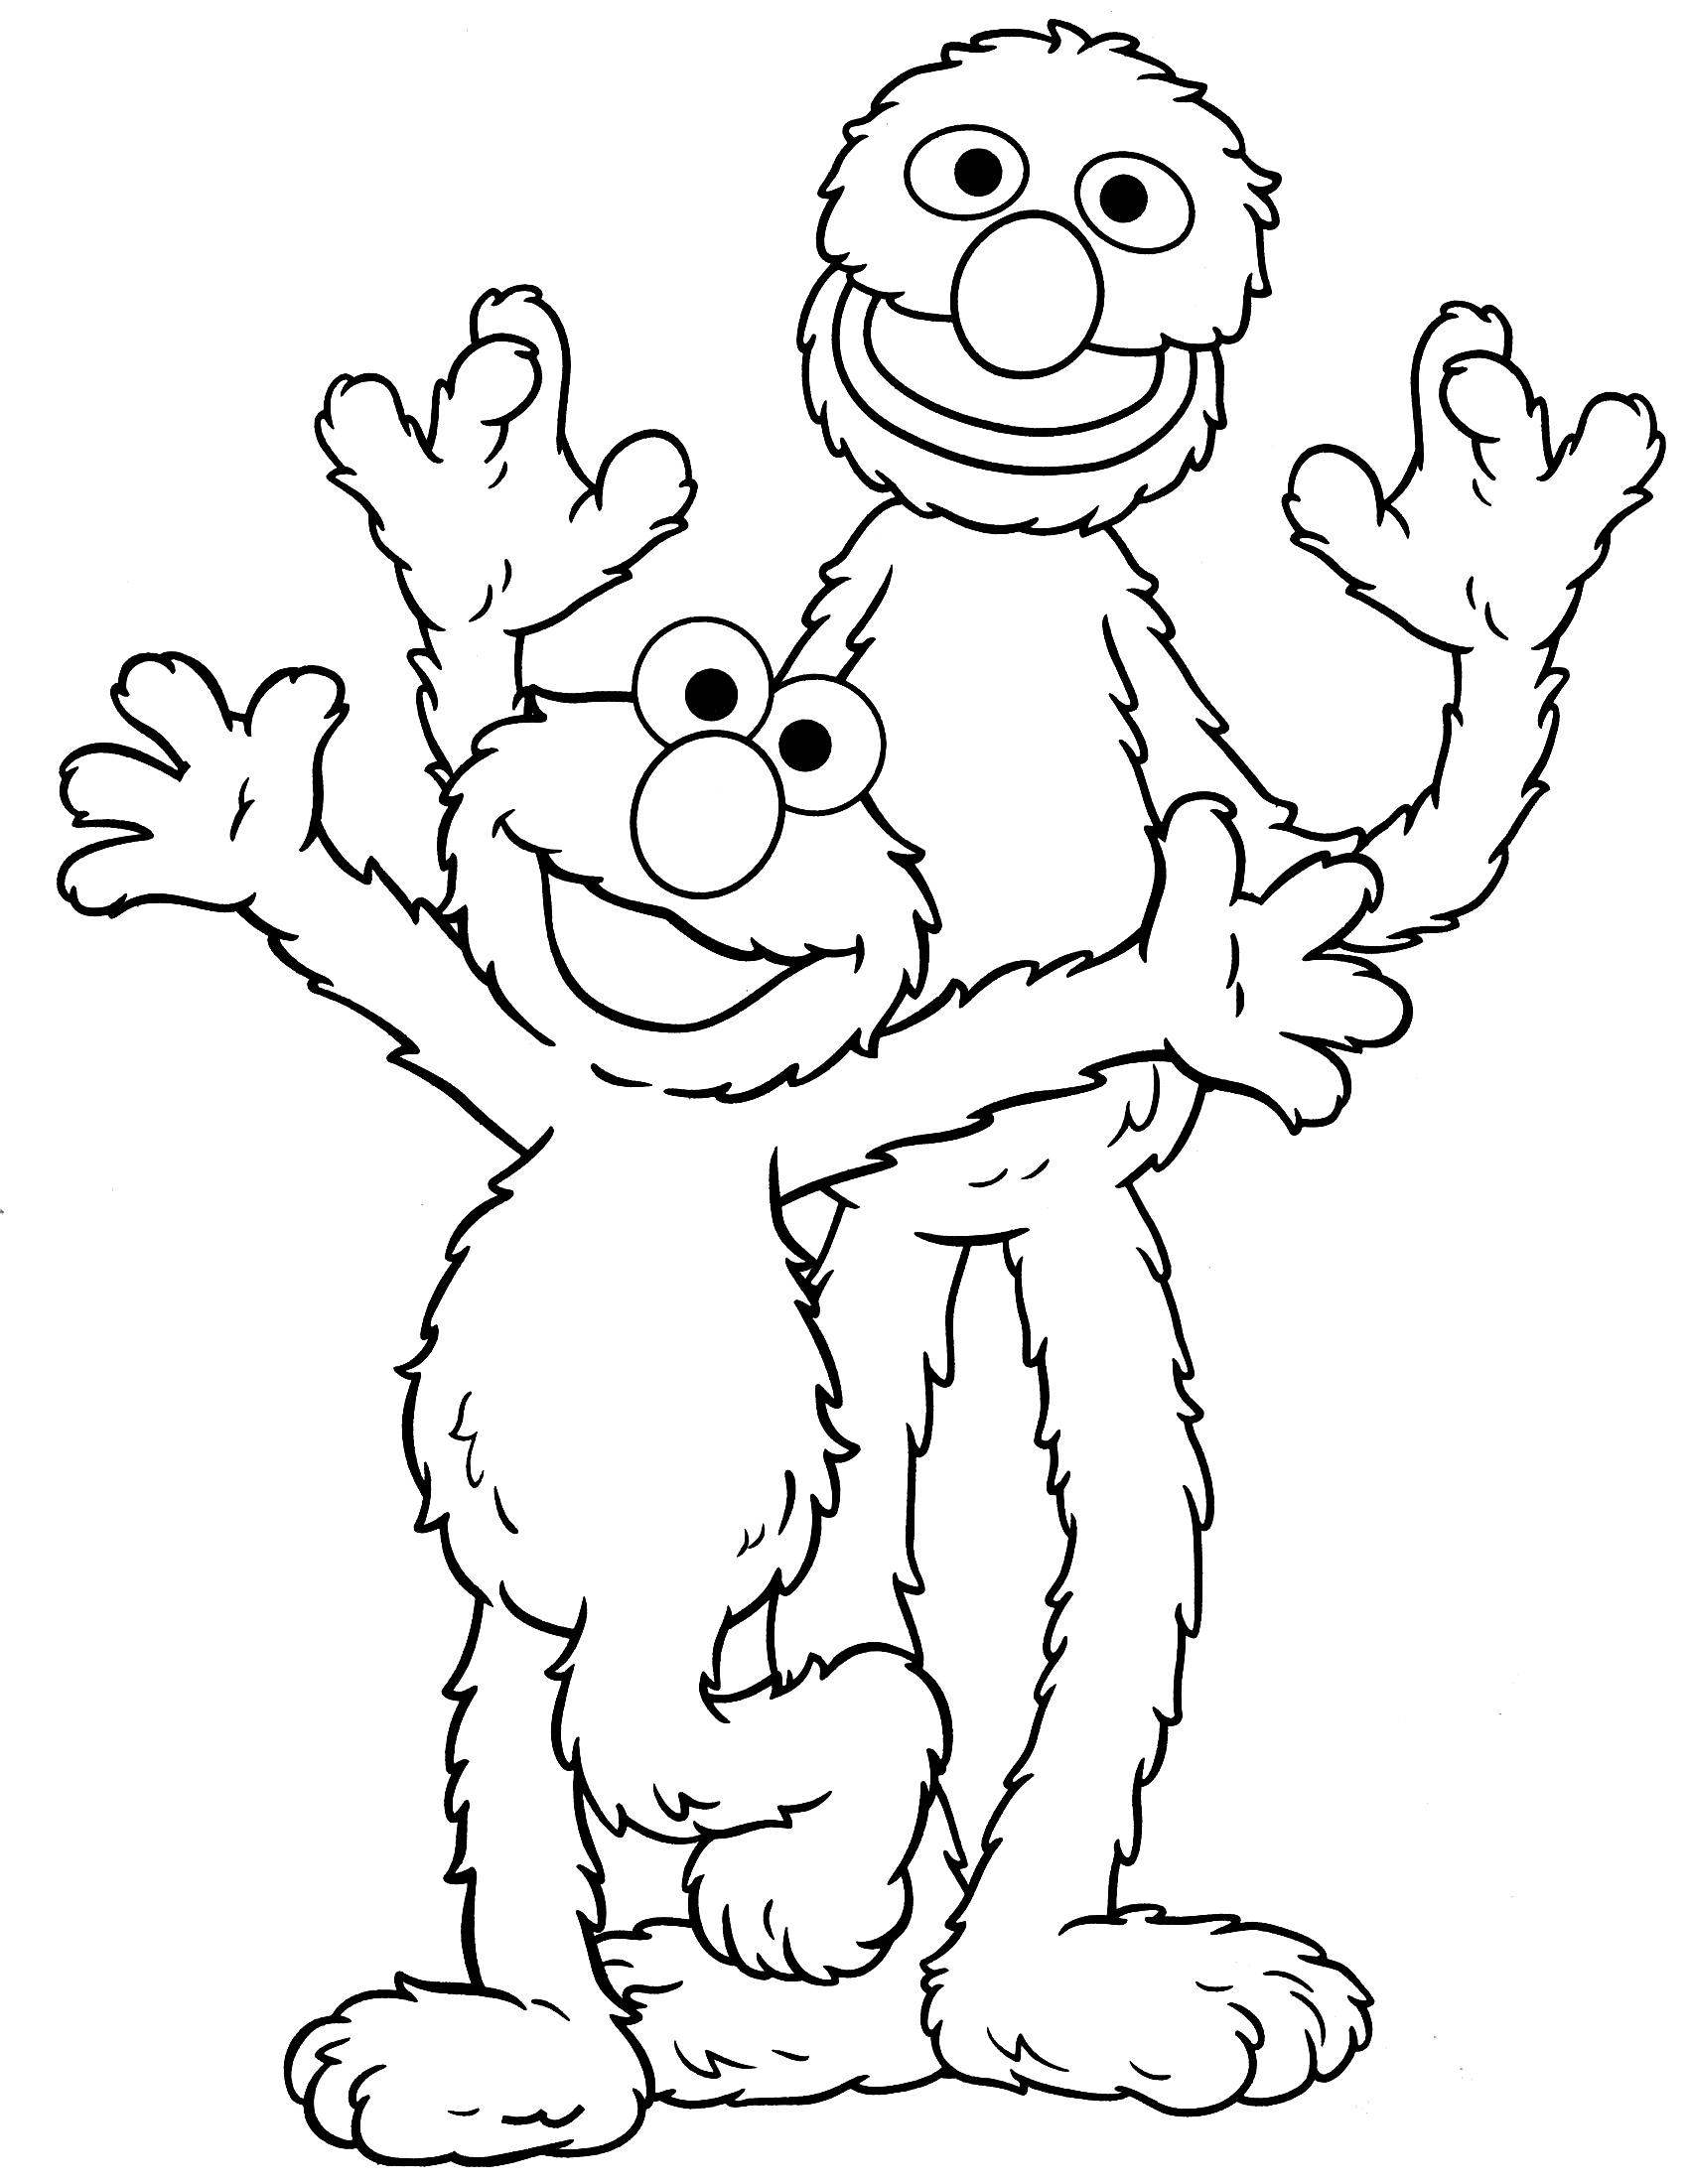 Sesame street coloring pages to download and print for free for Sesame street color pages